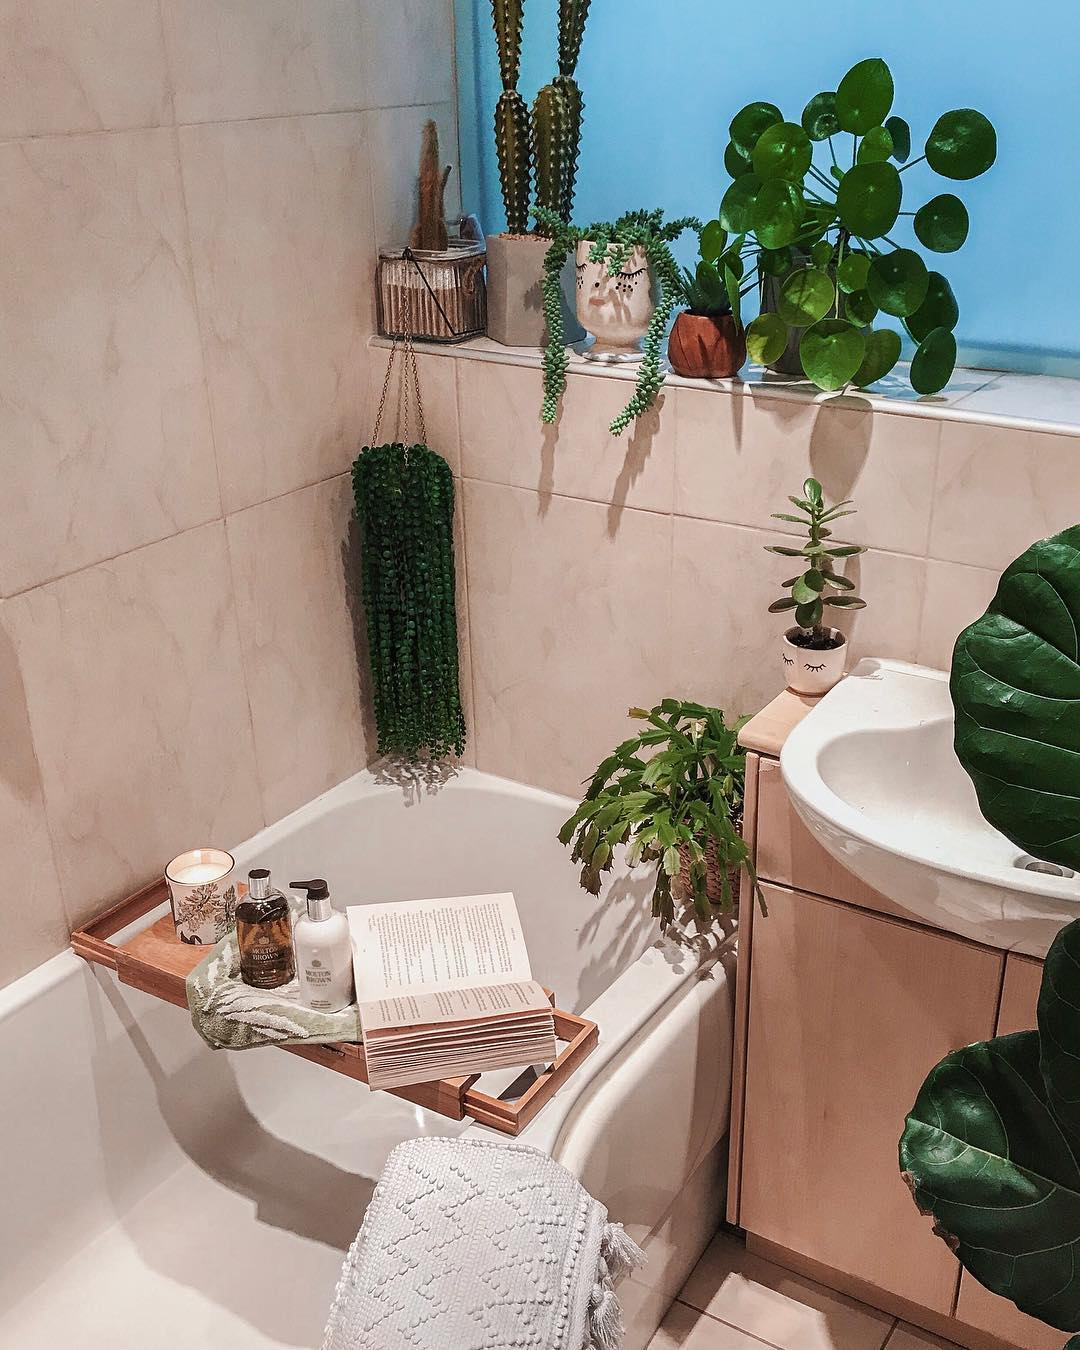 Rental Bathroom Makeover: The Wish List, Rental Bathroom Makeover, Rental Bathroom, Rented Home, Renting A Home, making a house a home when it isn't your own, interior styling, interiors, decor, How I rent